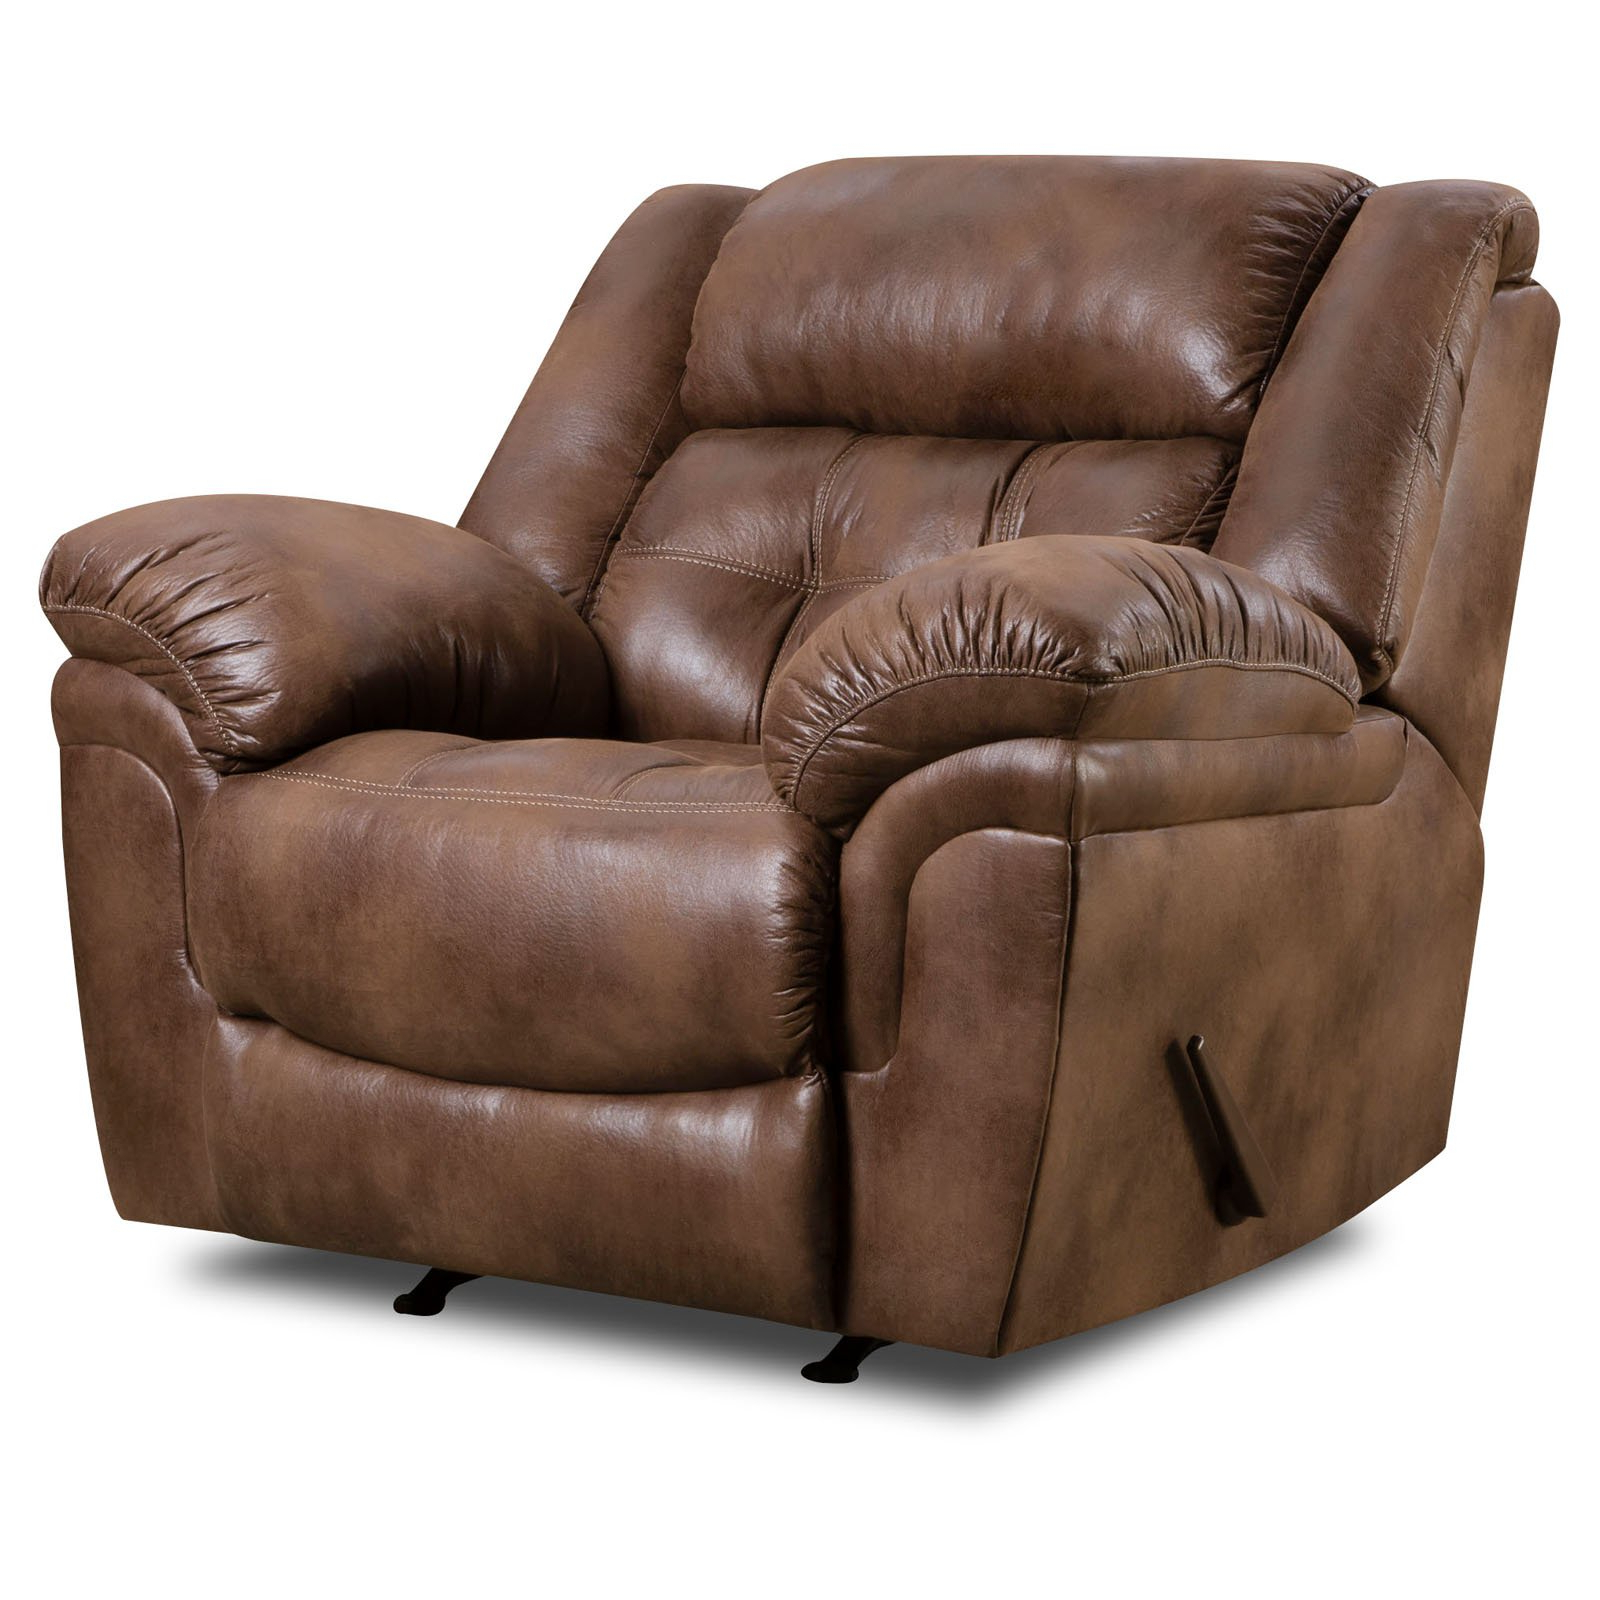 Preferred Furniture: Surprising Simmons Recliners For Contemporary Living Room With Regard To Rogan Leather Cafe Latte Swivel Glider Recliners (View 6 of 20)